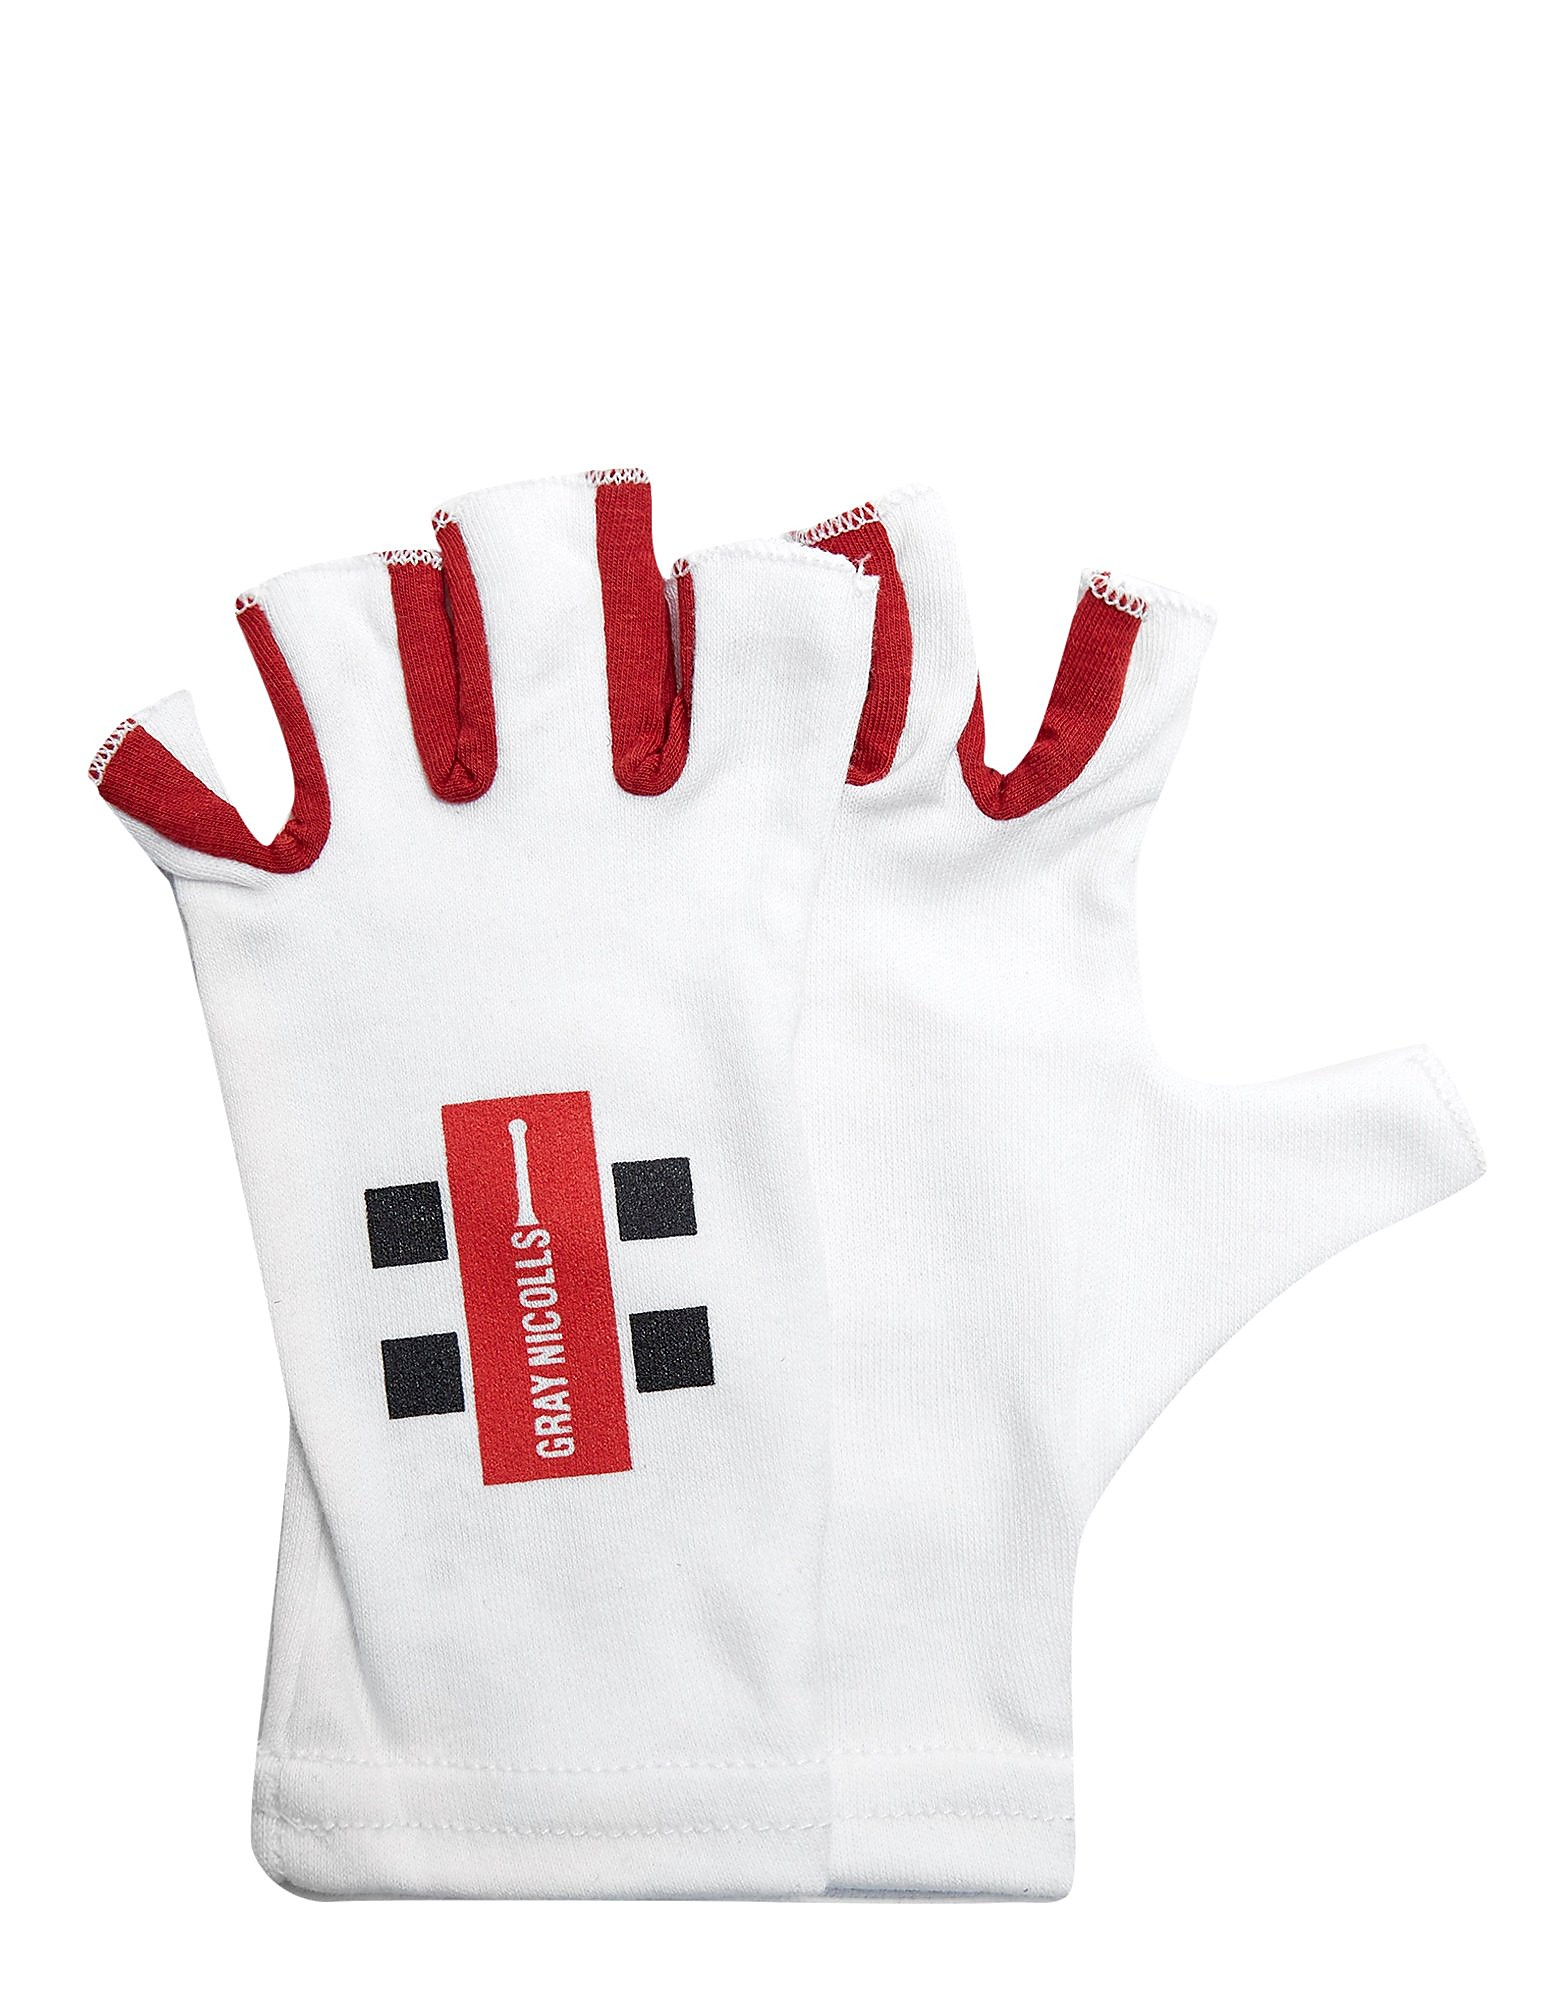 Gray Nicolls Pro Fingerless Batting Inners